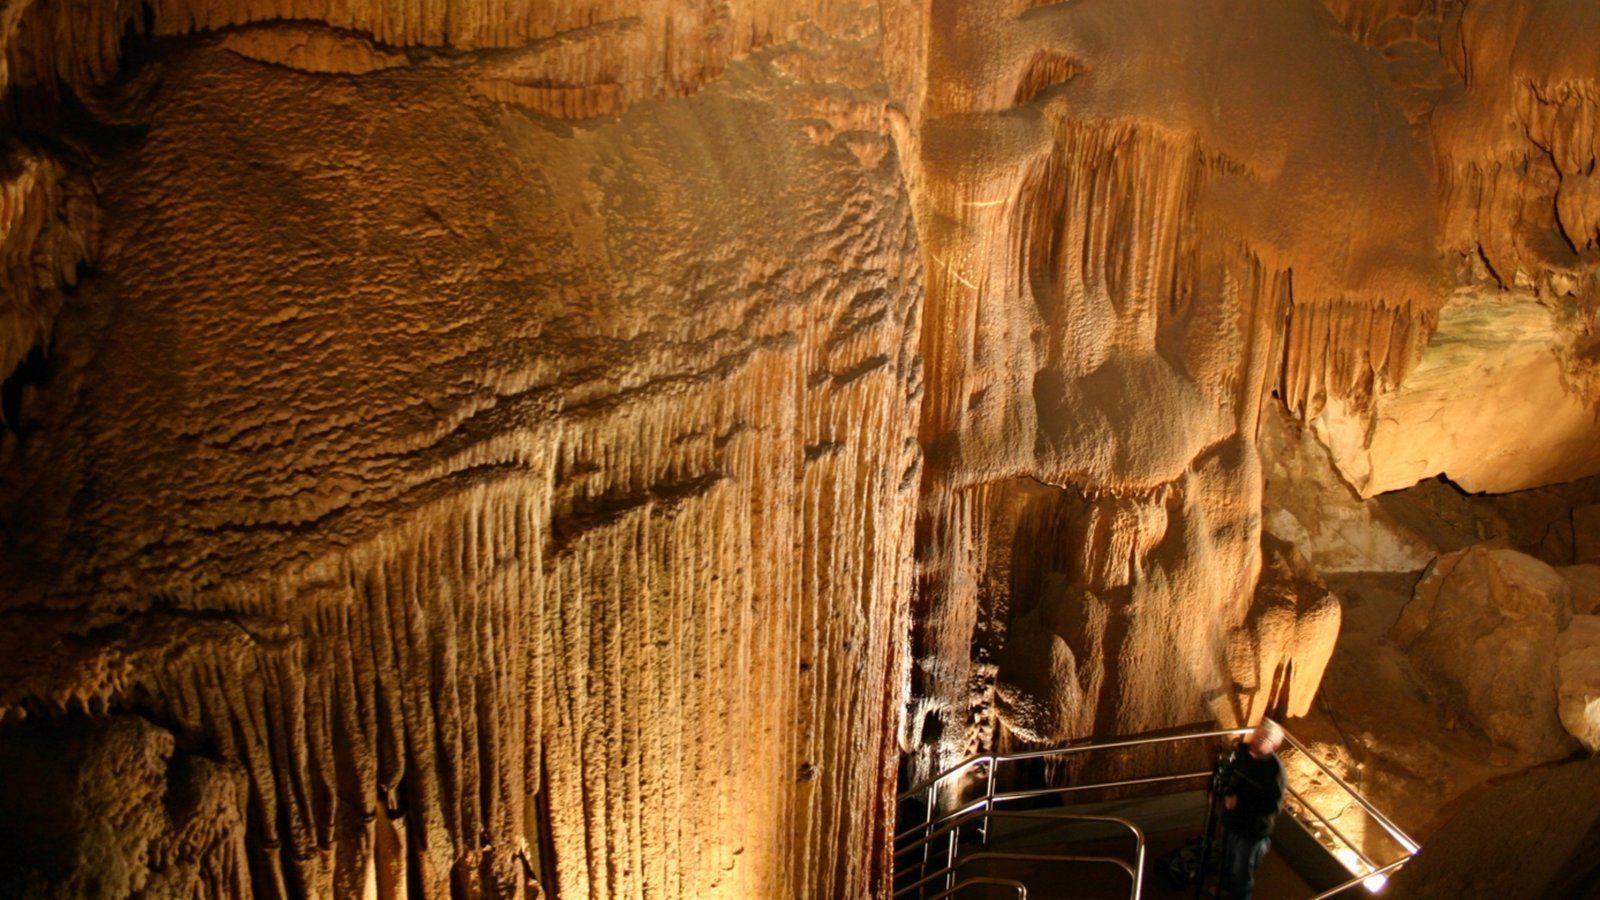 Mammoth Cave National Park Pictures: View Photos & Image of